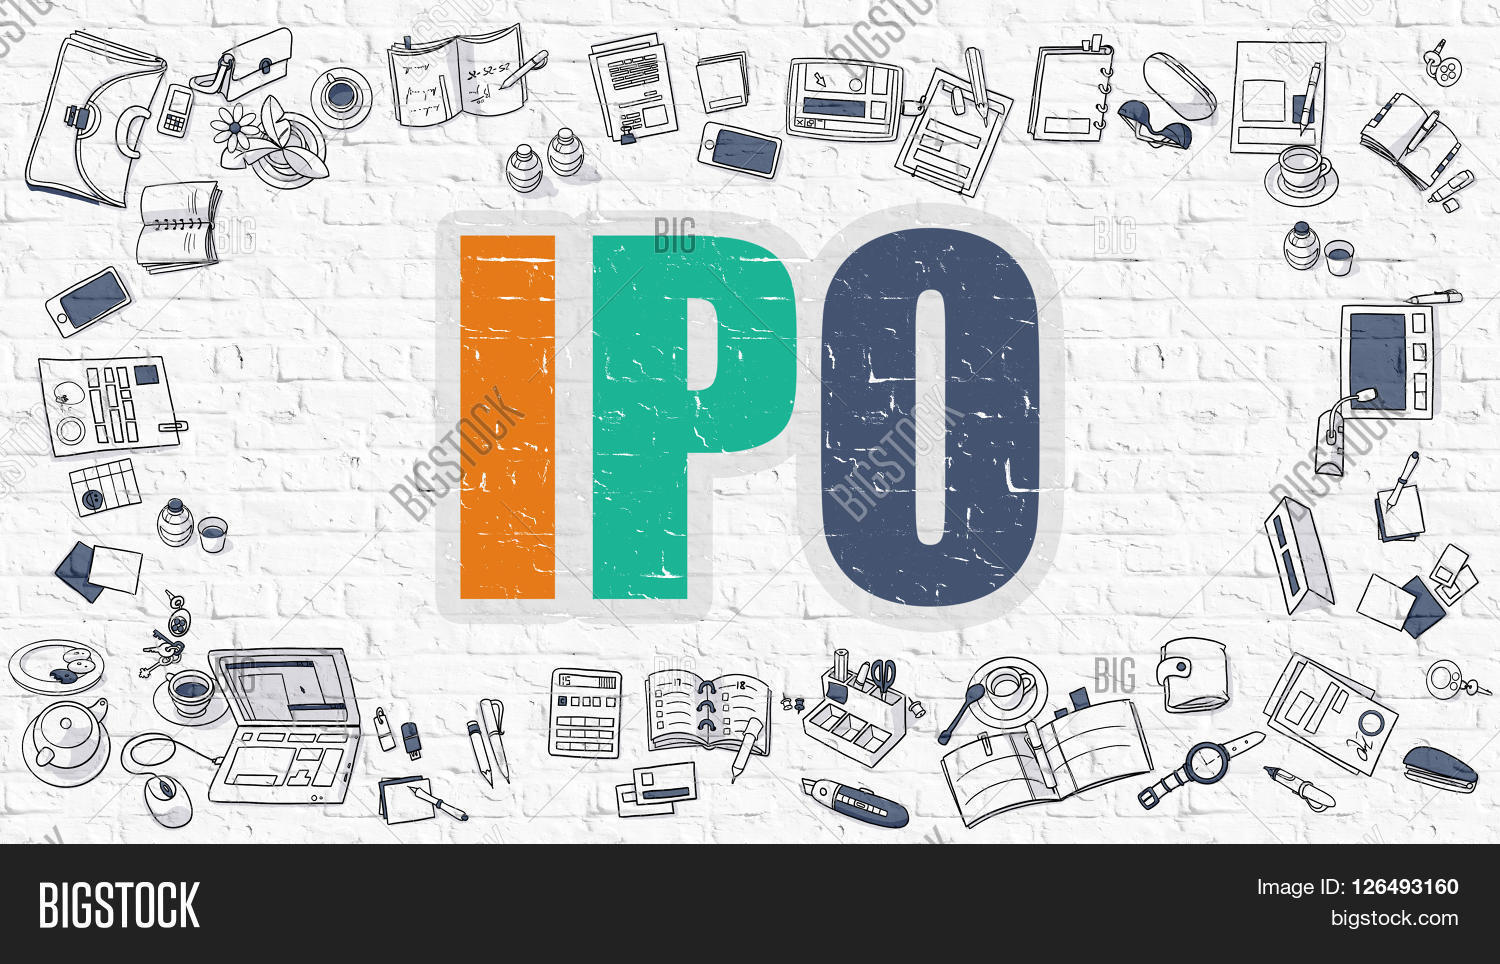 Stocks offered at ipo